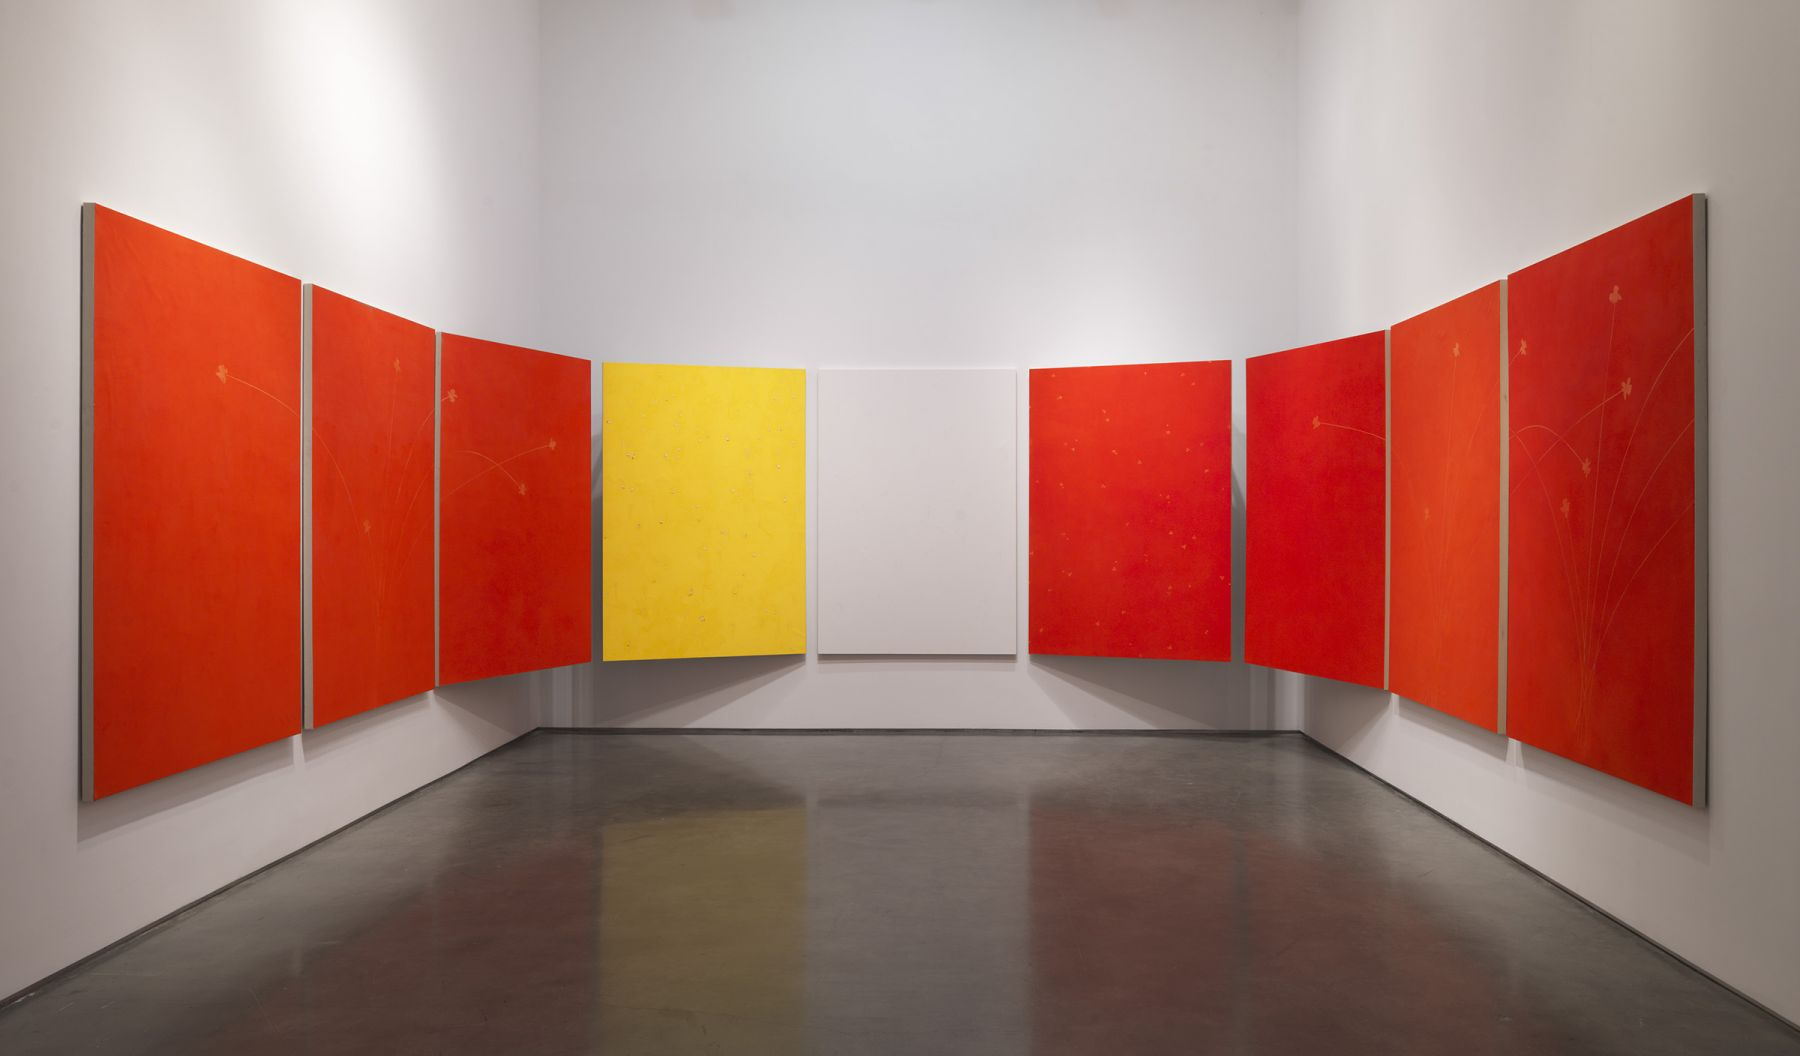 minimal color paintings by the Italian artist Pier Paolo Calzolari